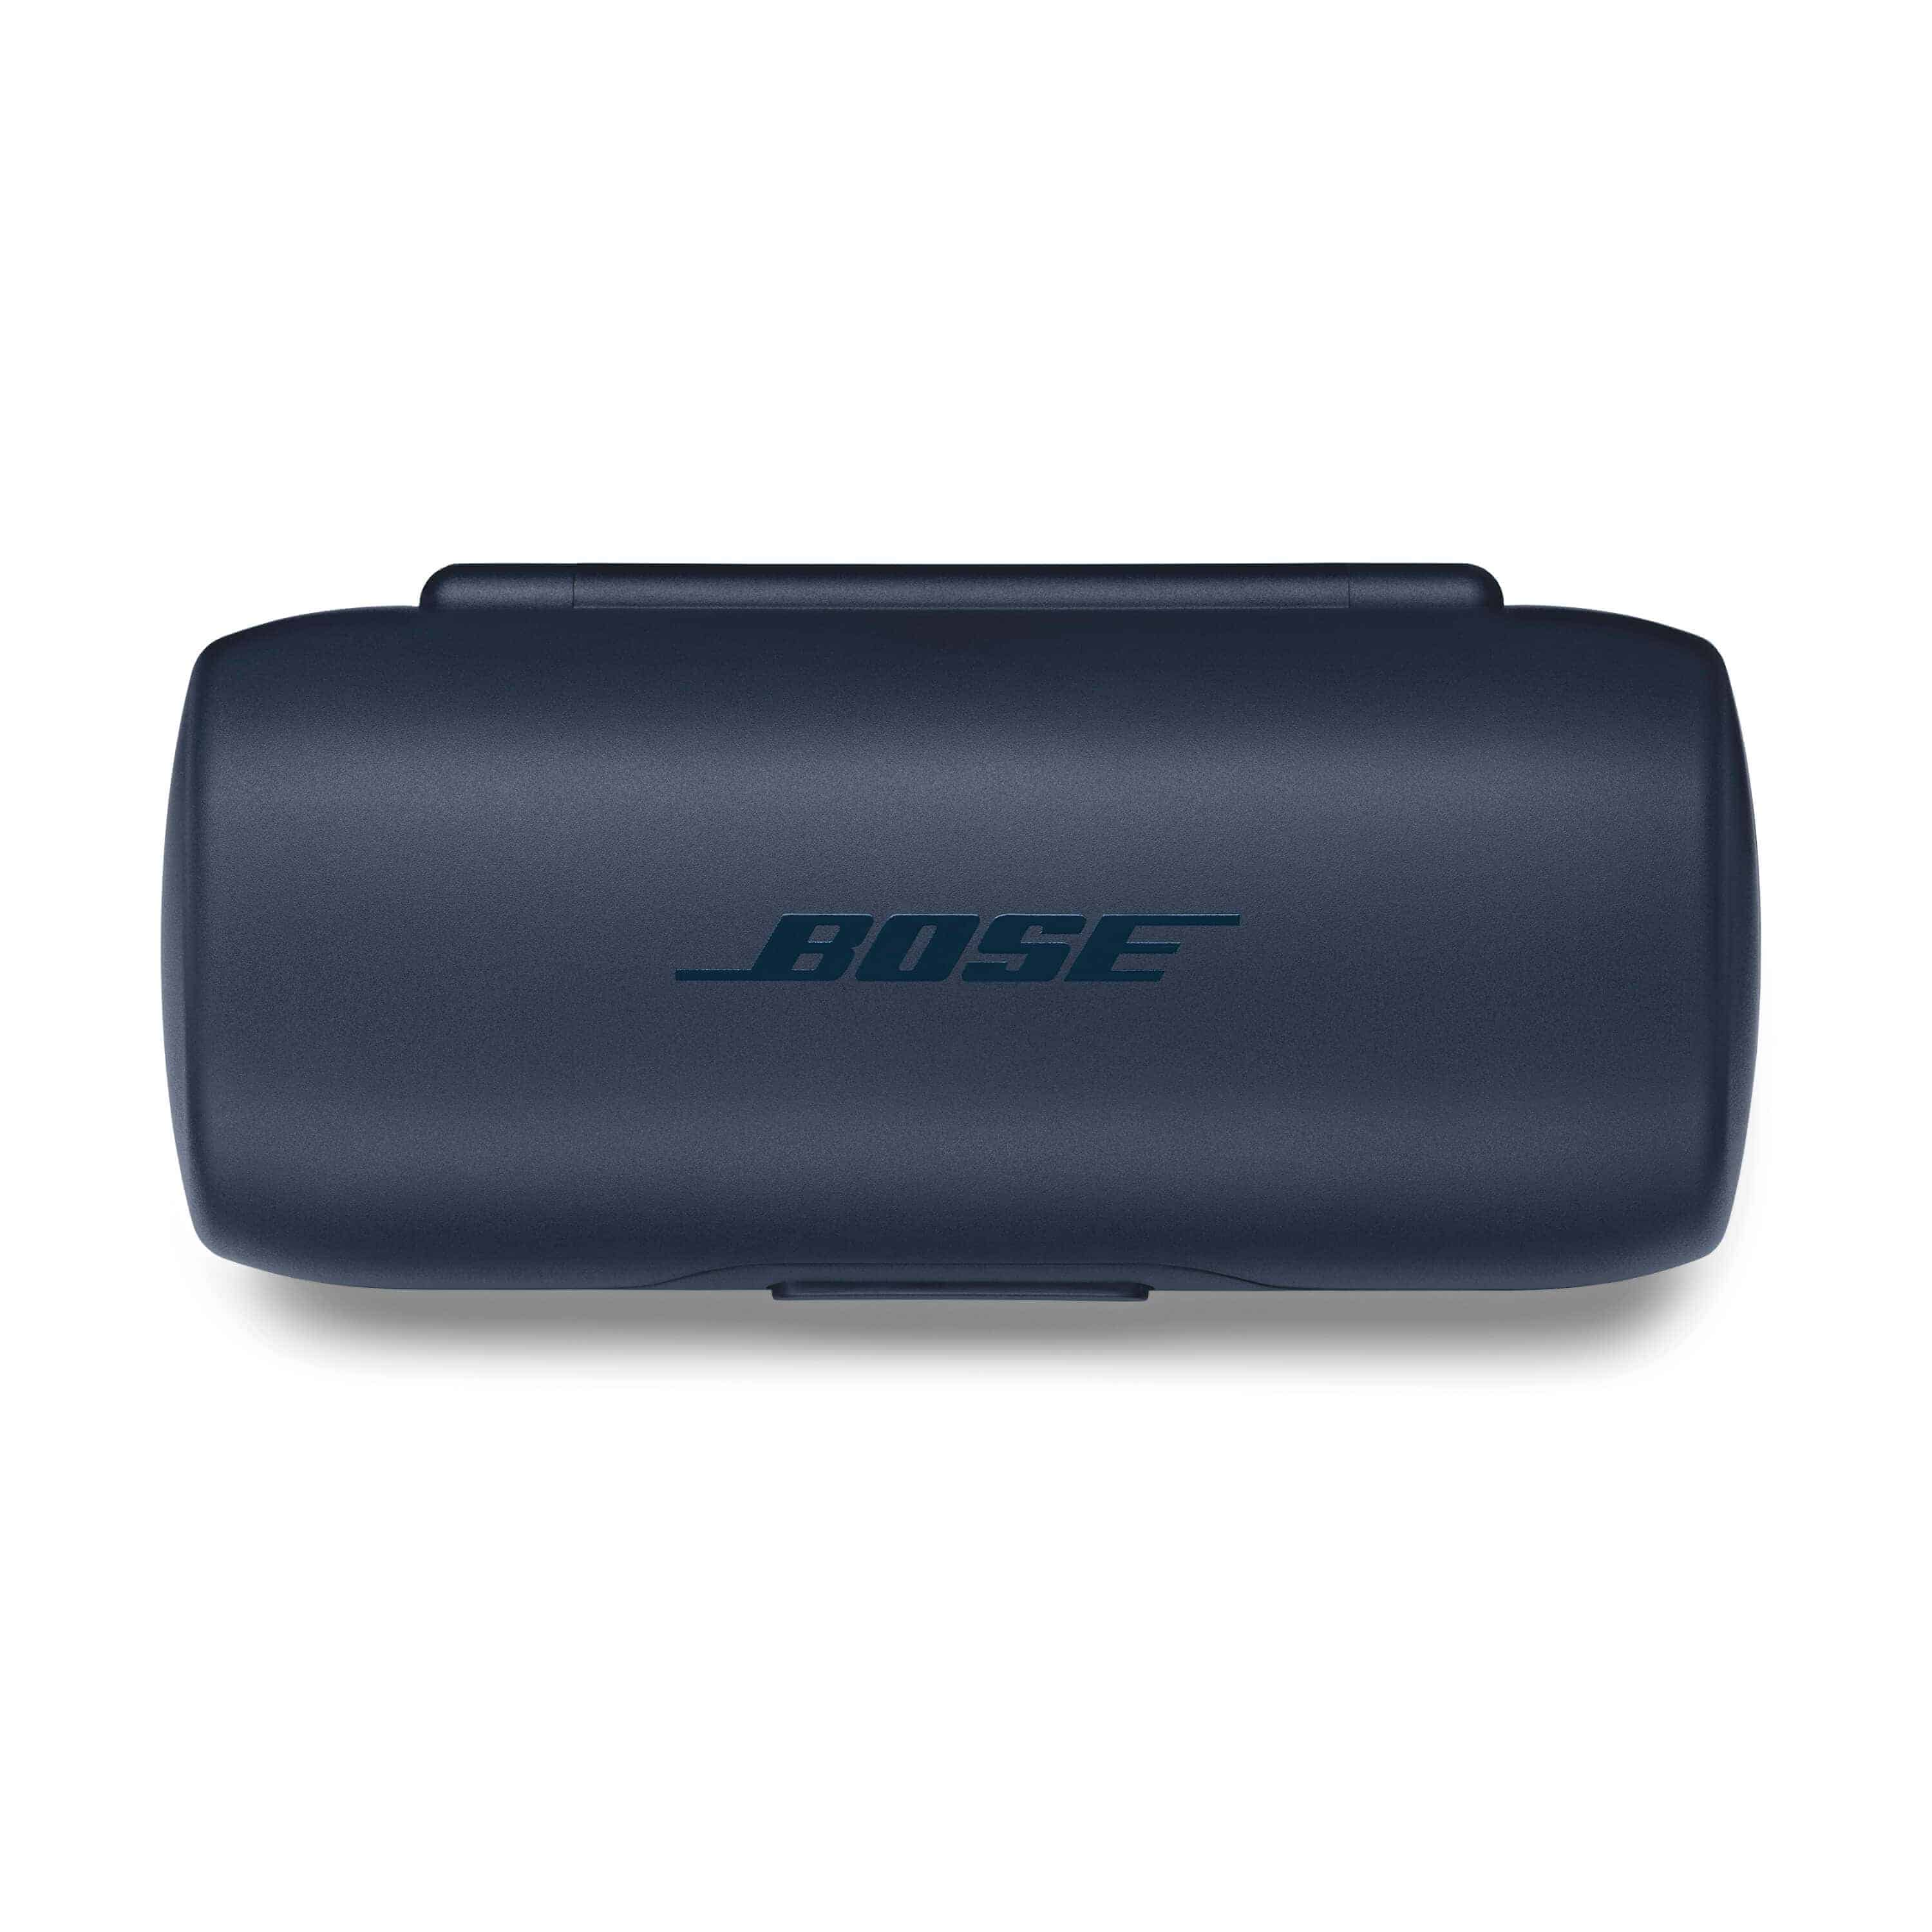 SoundSport_Free_charging_case_1857_10 bose enters wireless earbuds market with the soundsport free bose soundsport earbuds wiring diagram at n-0.co